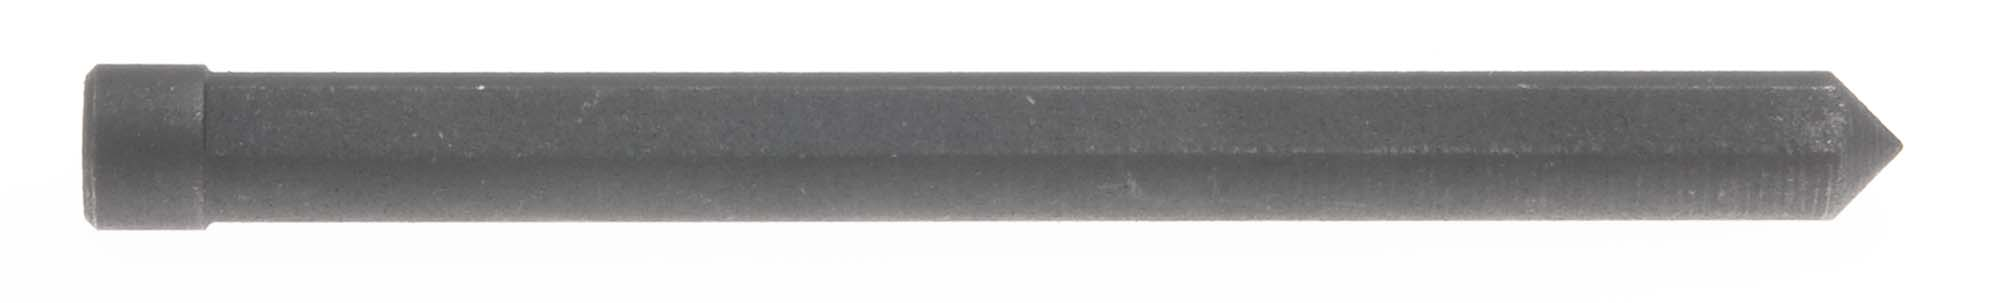 "Ejector Pin for 2"" Annular Cutter (except 7/16"")"